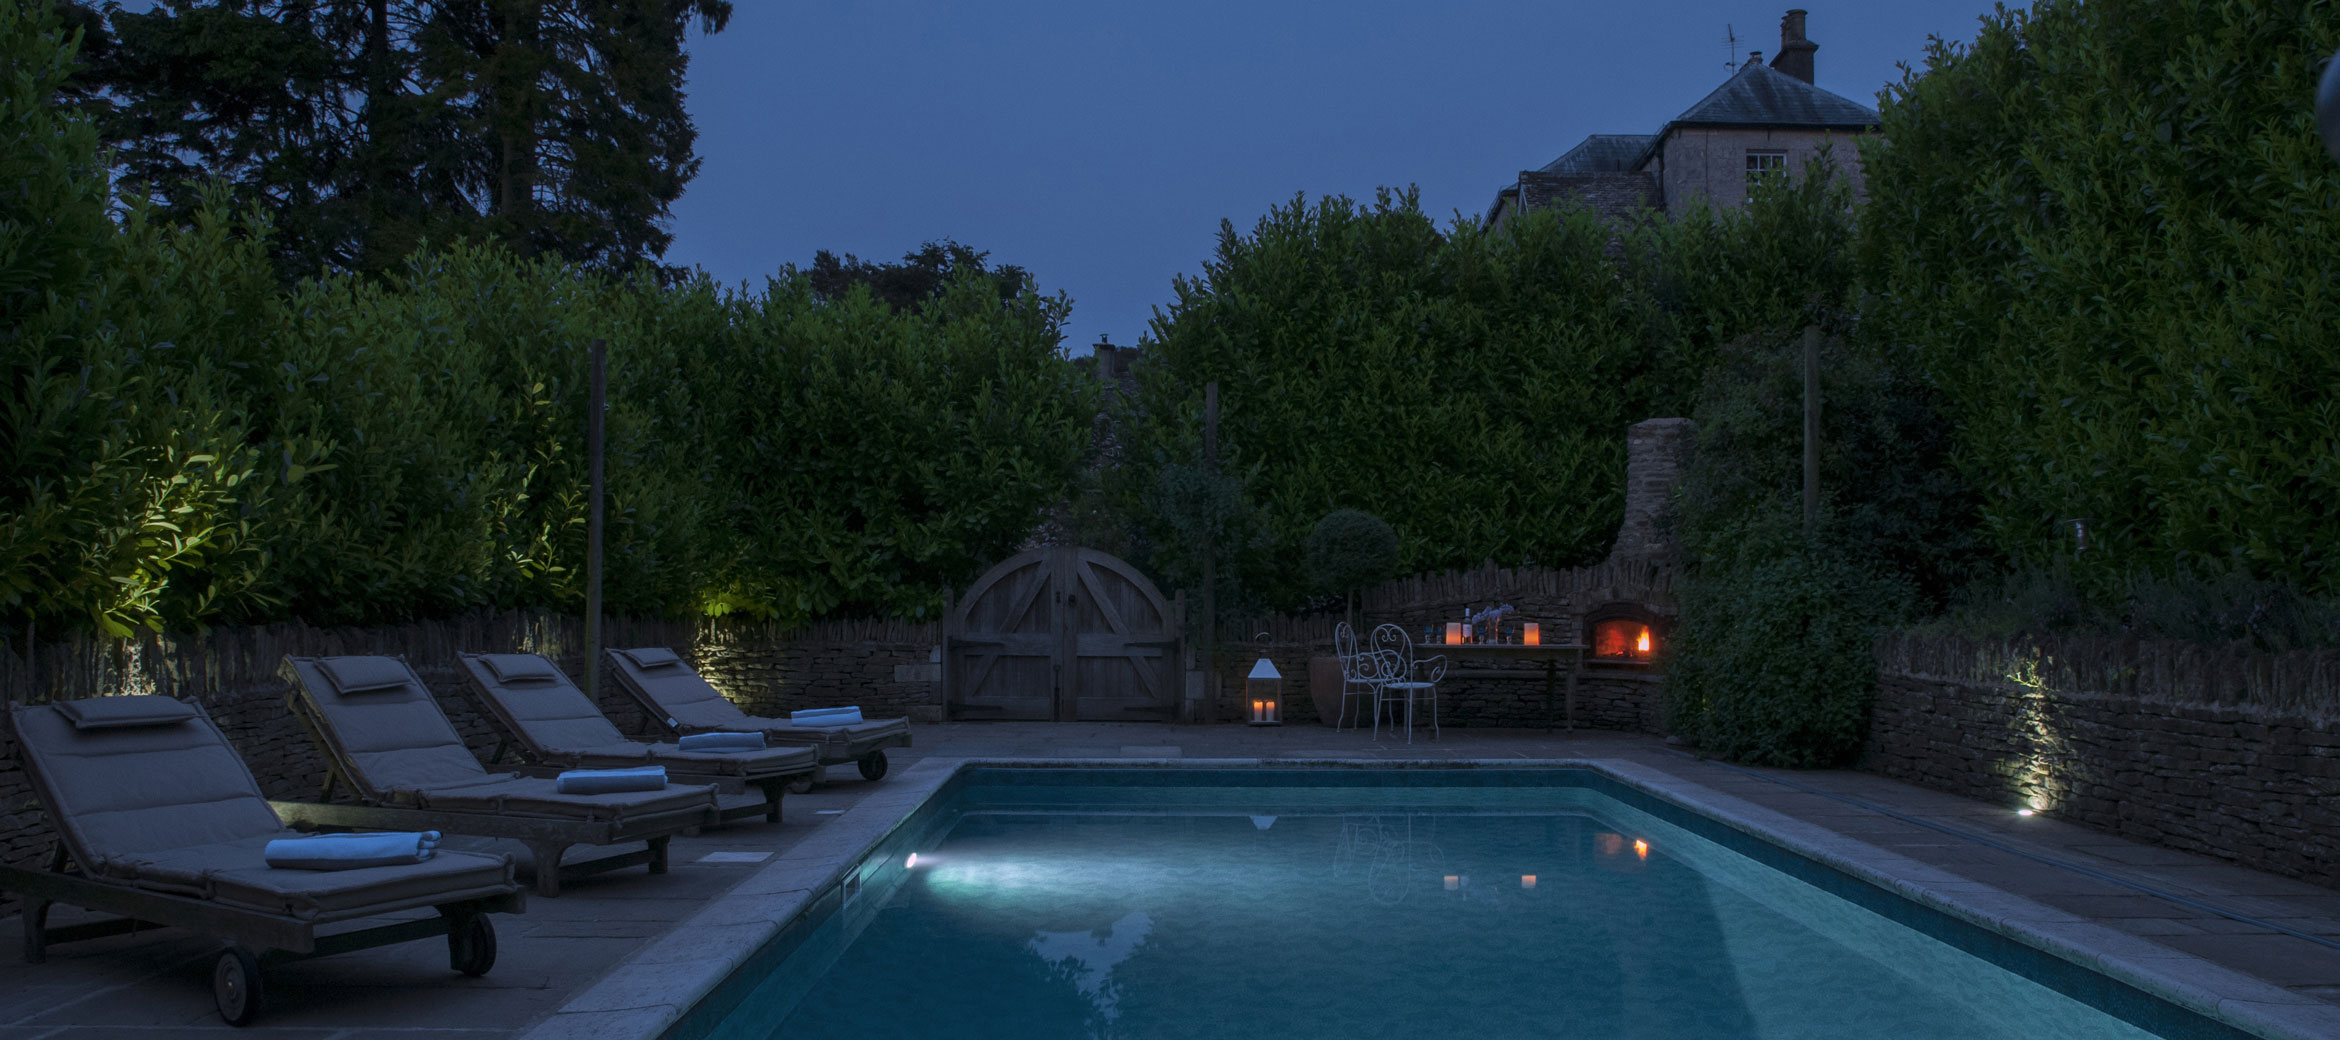 cotswold-swimming-pool-at-dusk